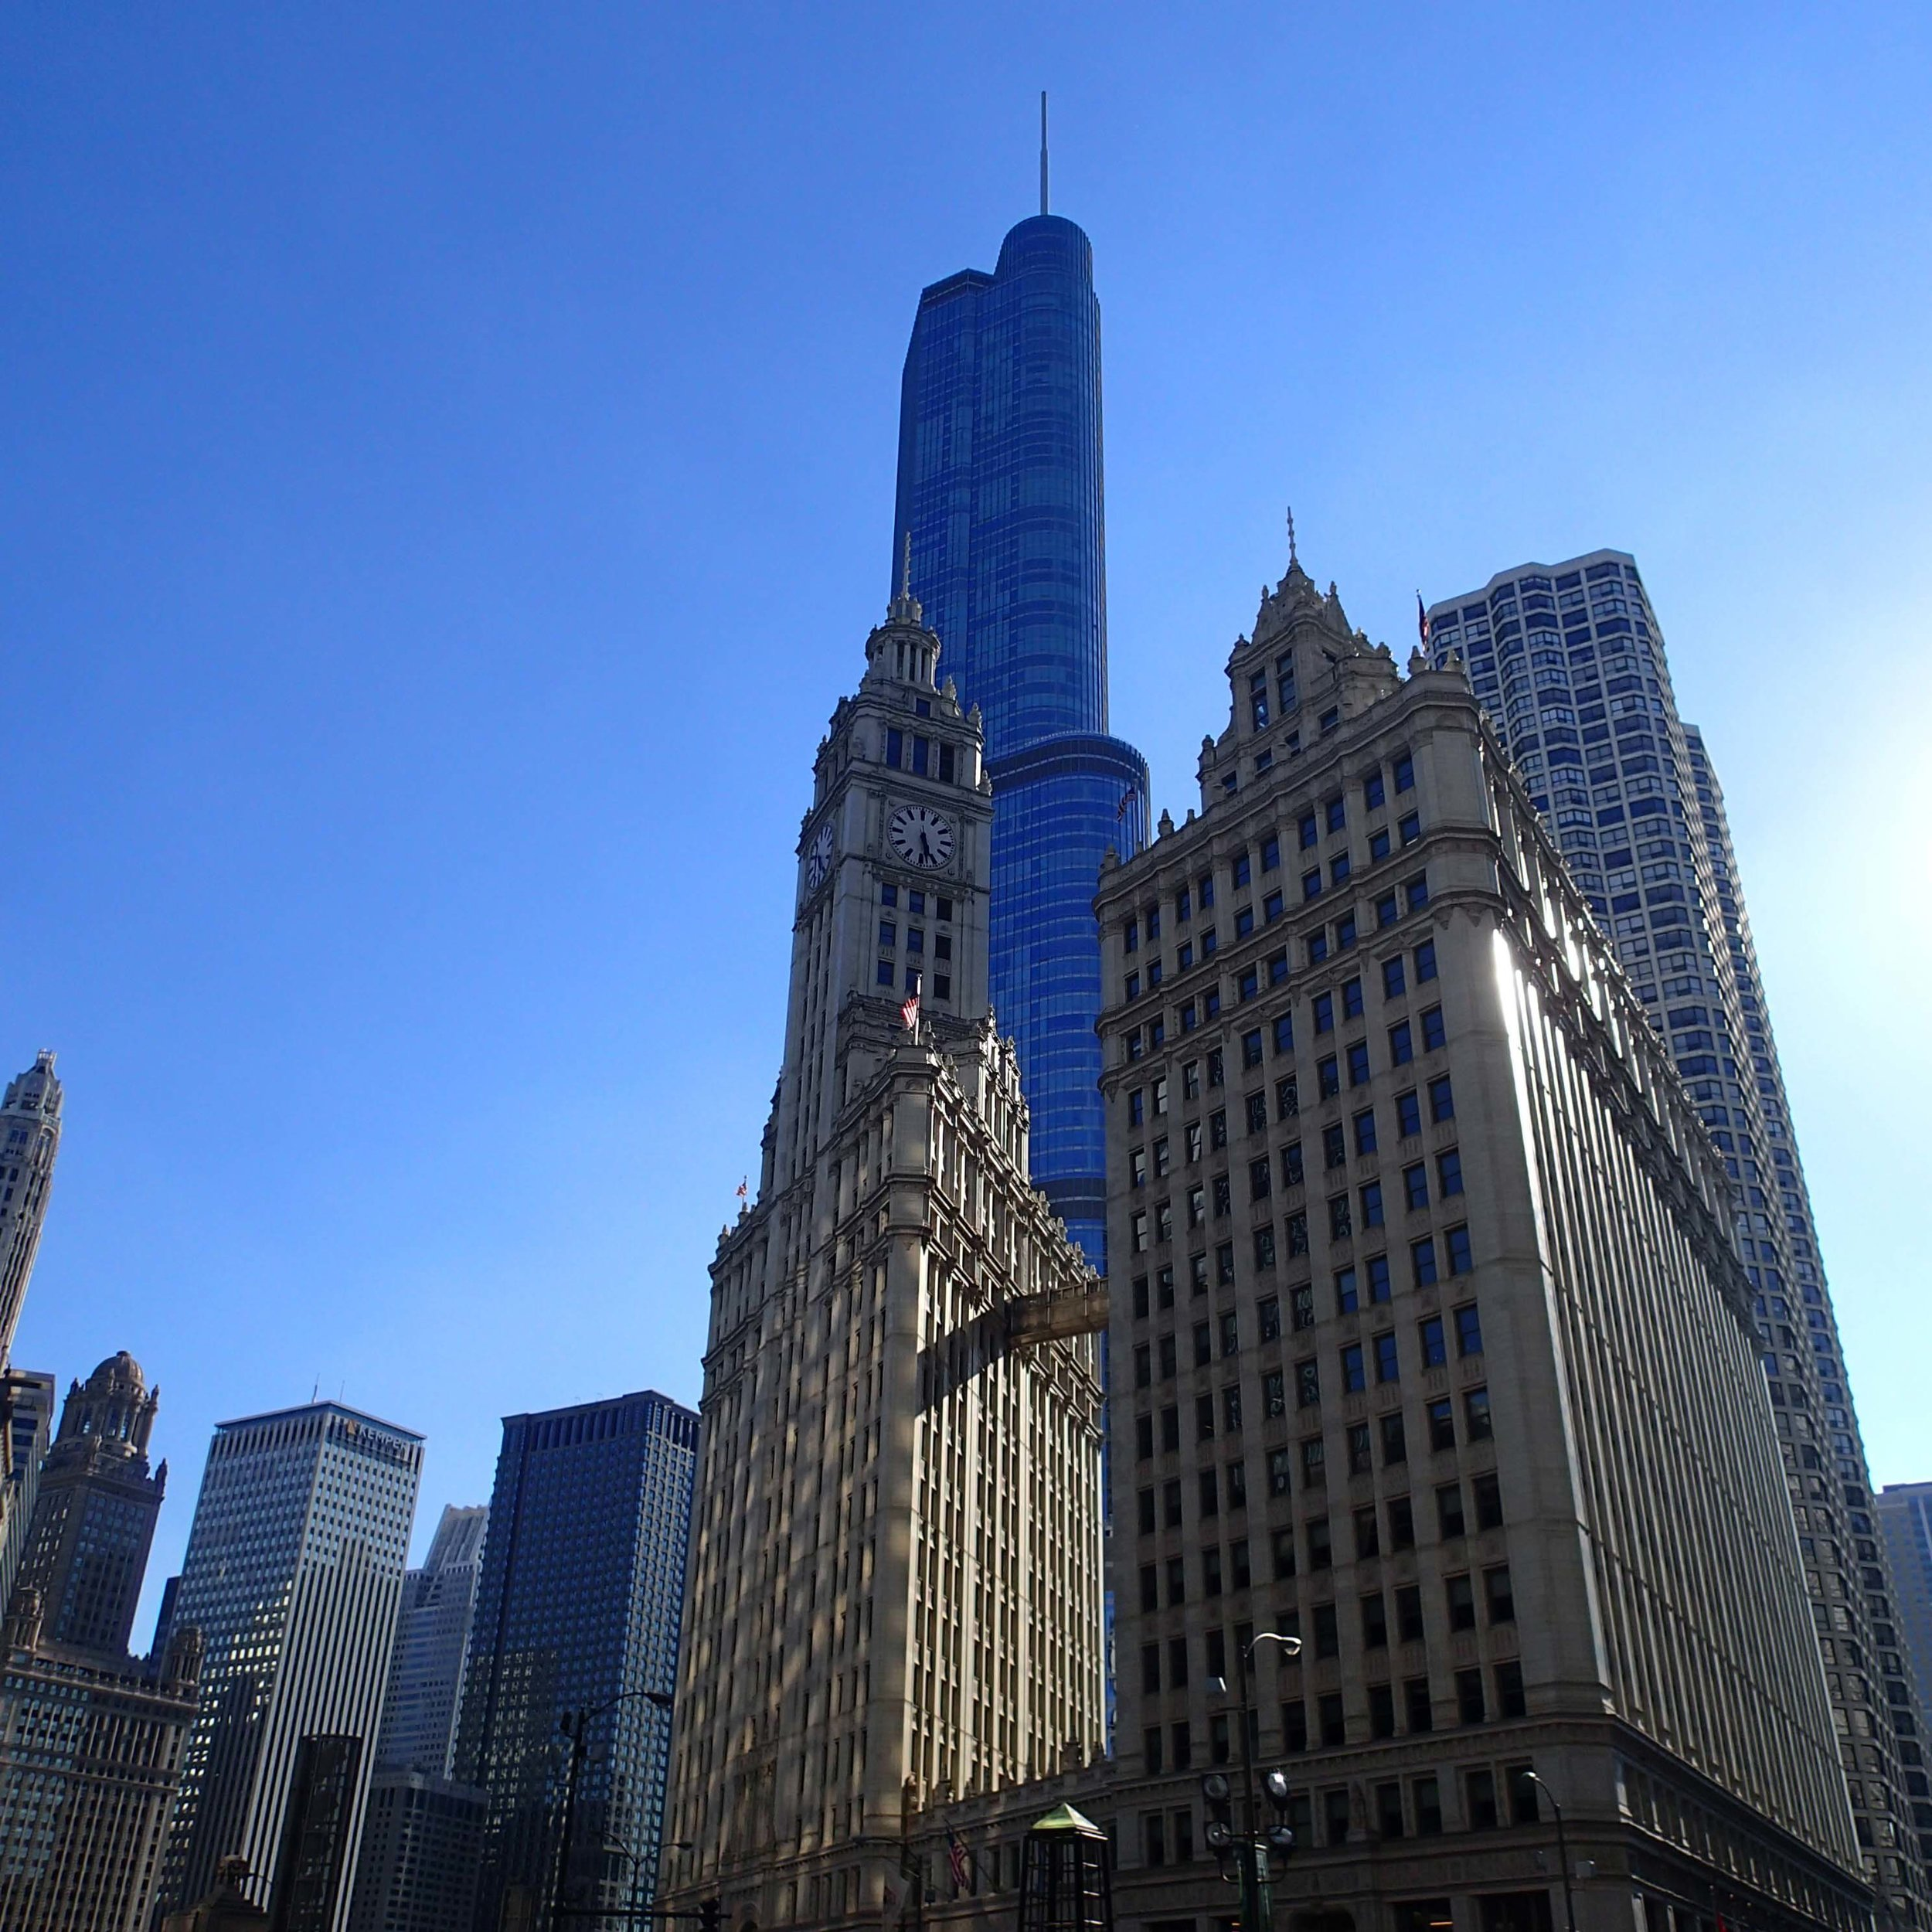 skyline from Howells and Wood.jpg